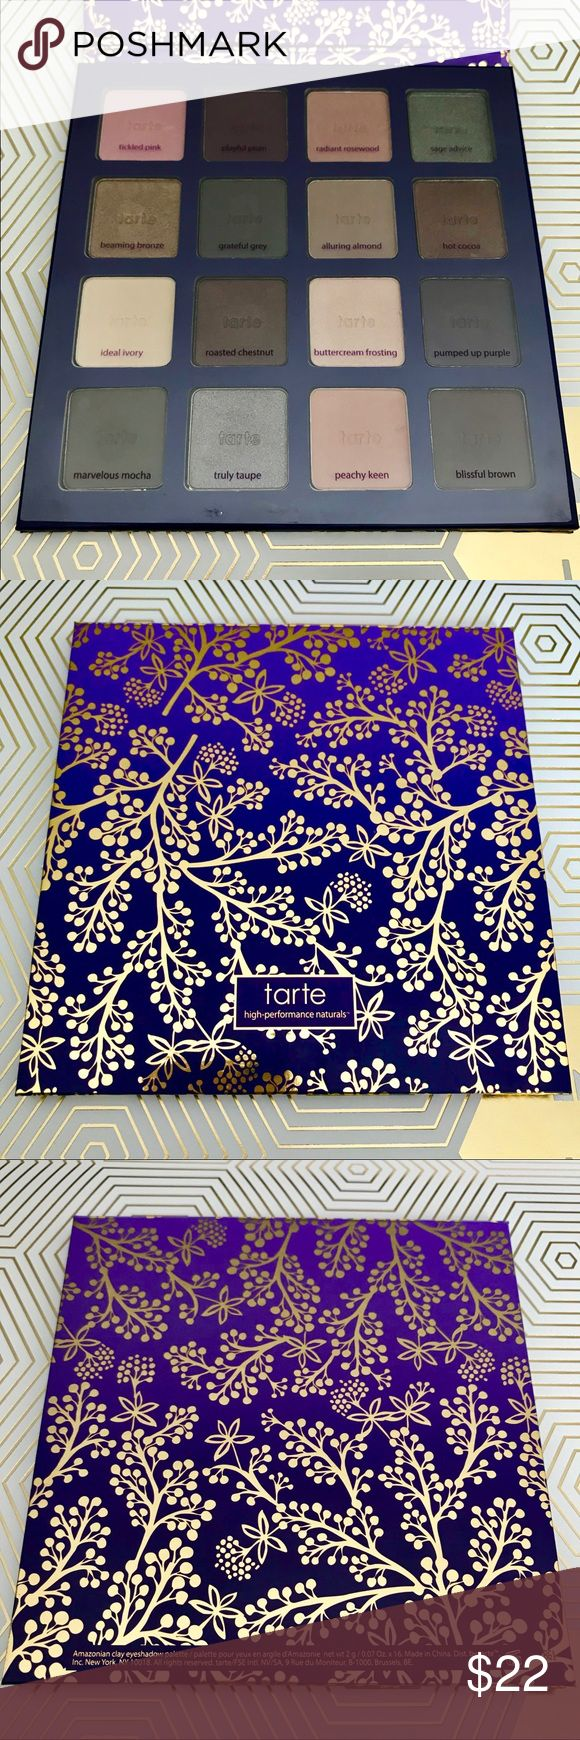 Tarte Amazonian Clay Holiday Palette Limited Edition Holiday palette from Tarte. 16 eyeshadows, used once or twice, most shadows have only been swatched. tarte Makeup Eyeshadow